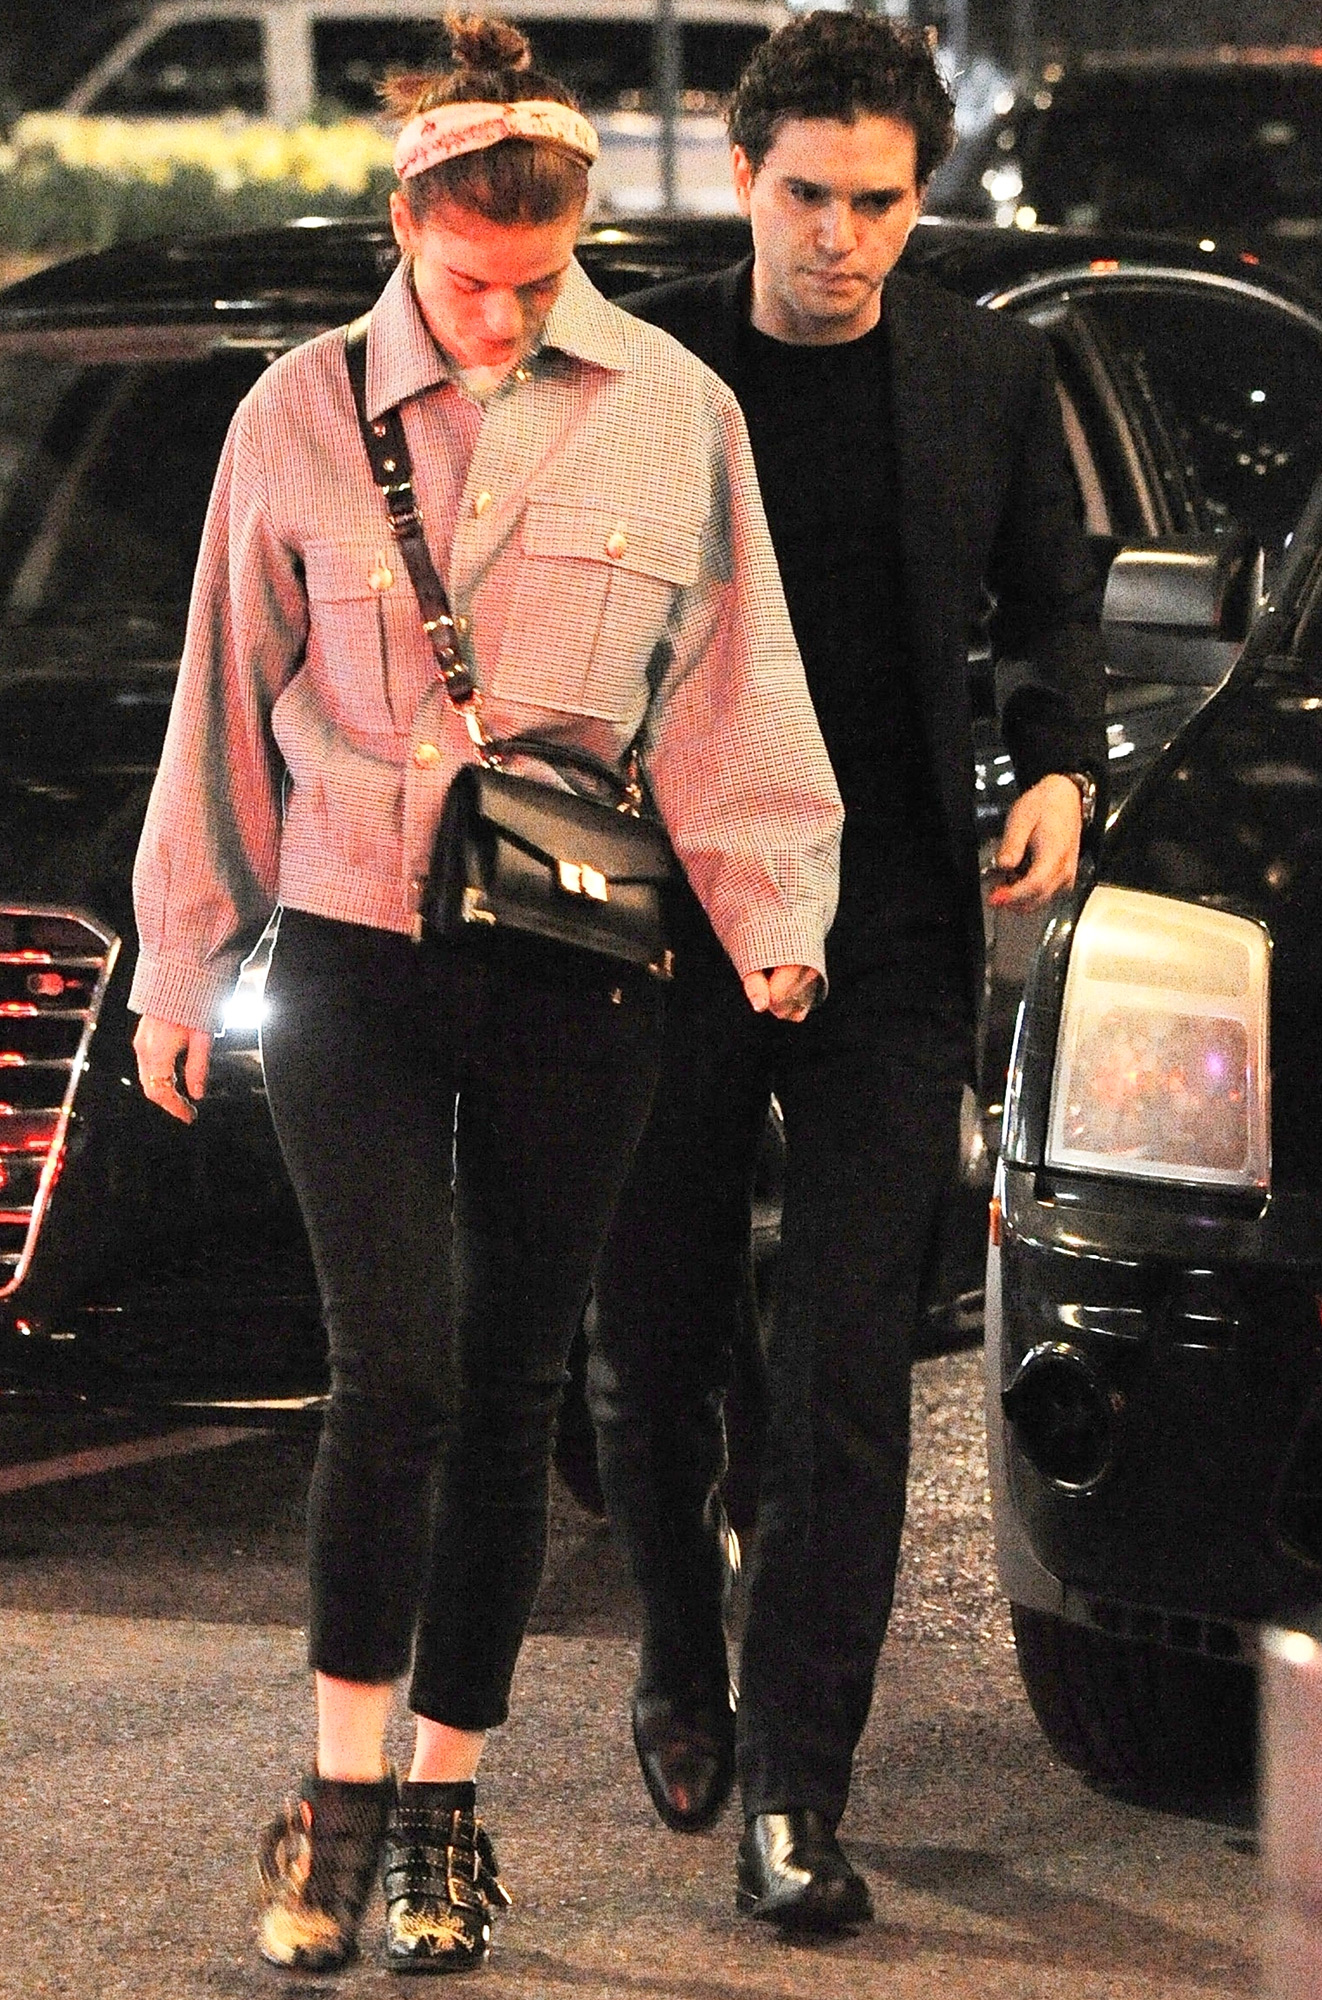 *EXCLUSIVE* Clean shaven Kit Harington and wifey Rose Leslie hit up New York City for date night